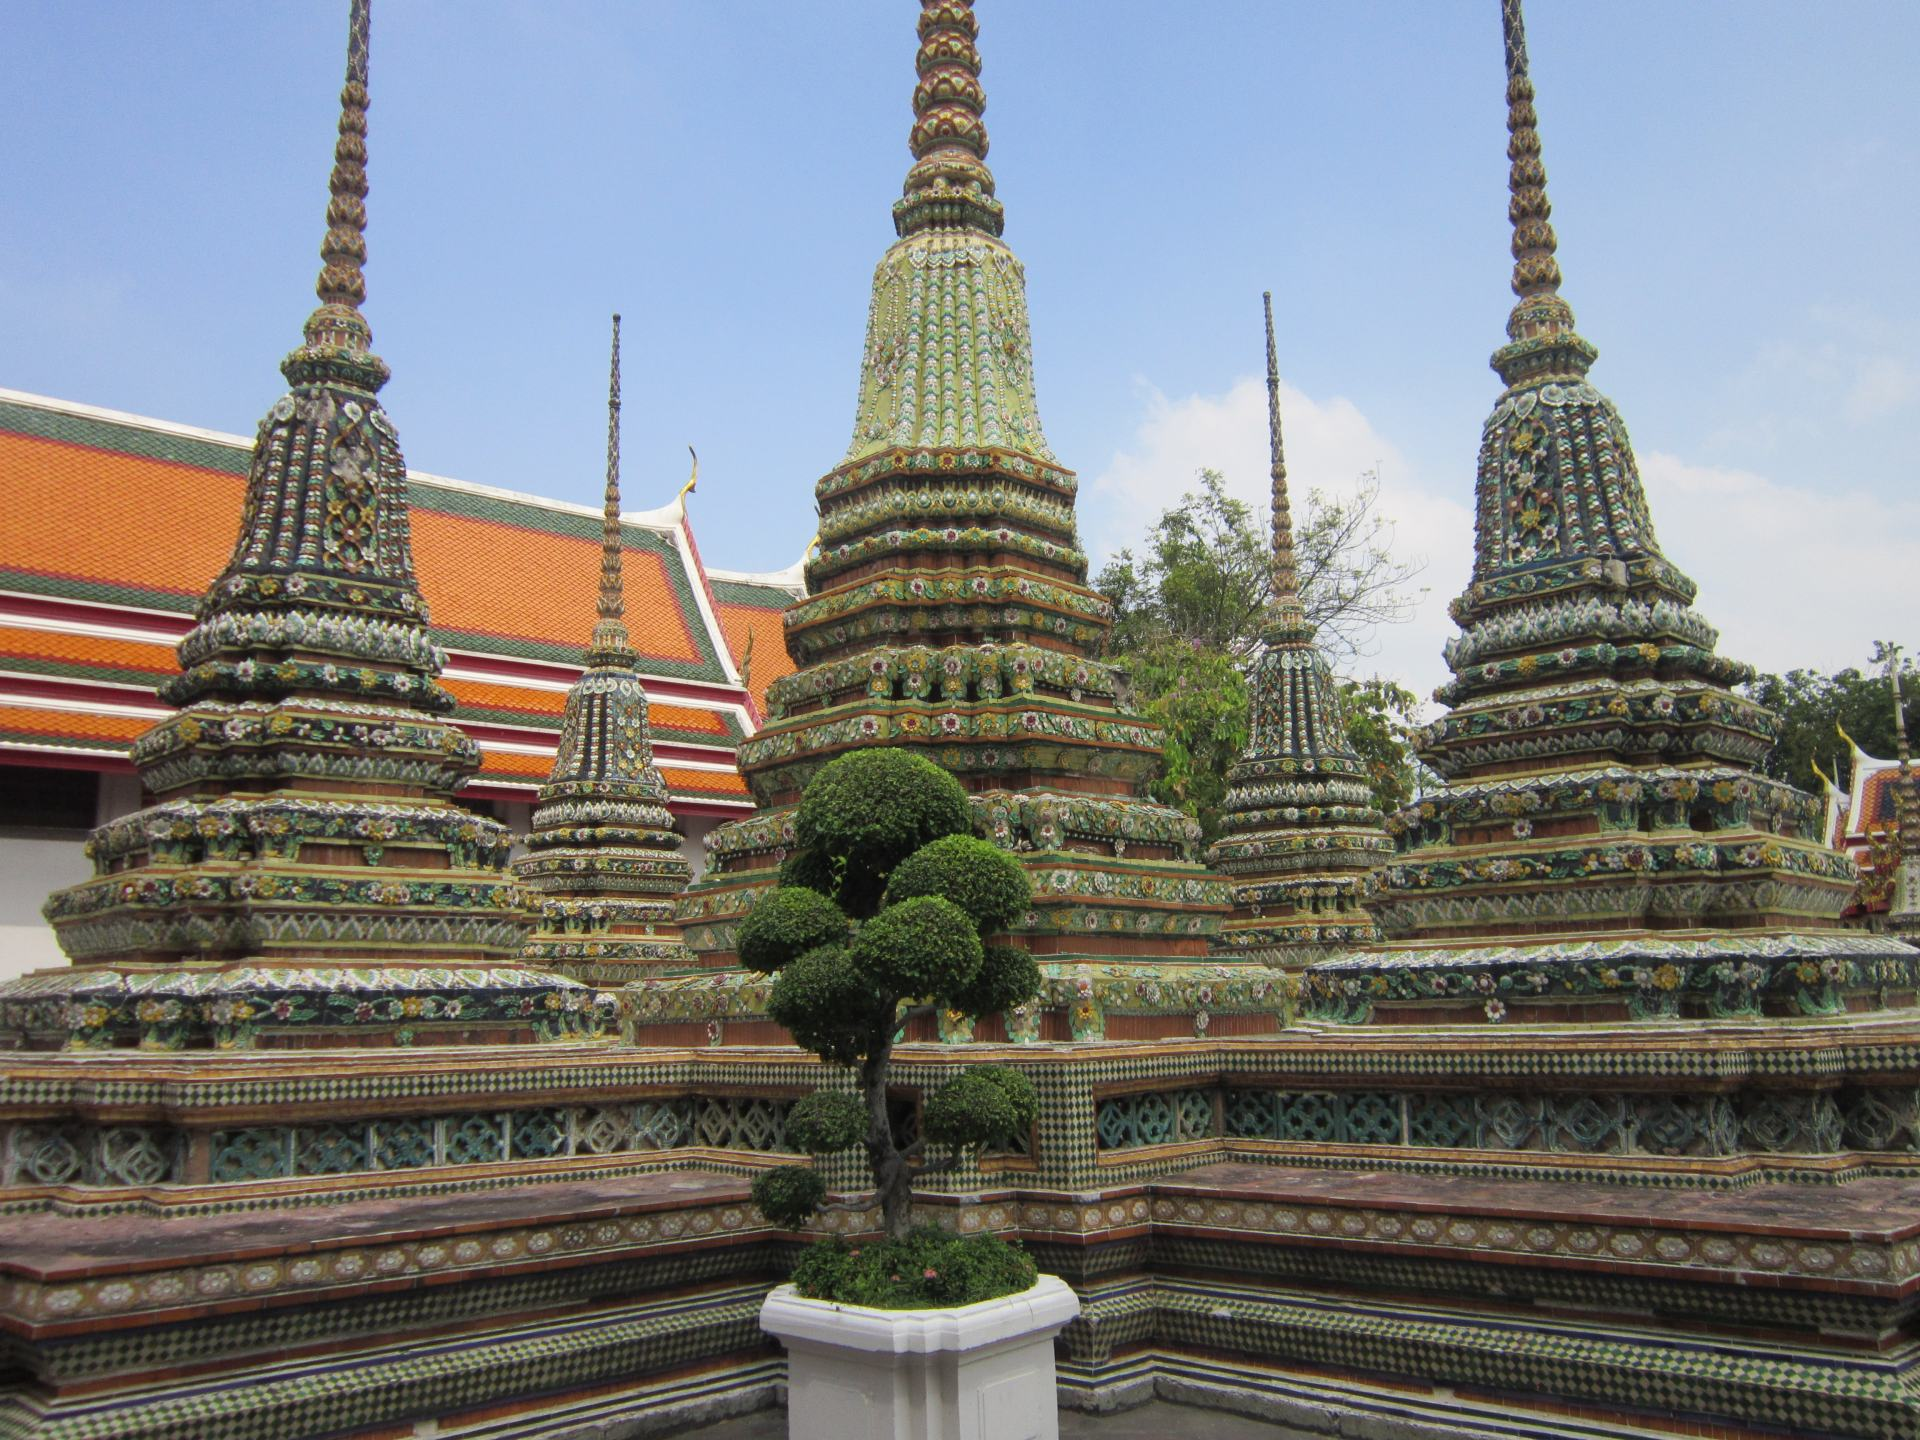 Multi coloured stupas at Wat Pho in Bangkok, one of the fantastic Cities in Southeast Asia. 3 in the foreground, 2 in the background. A small tree in front of them.